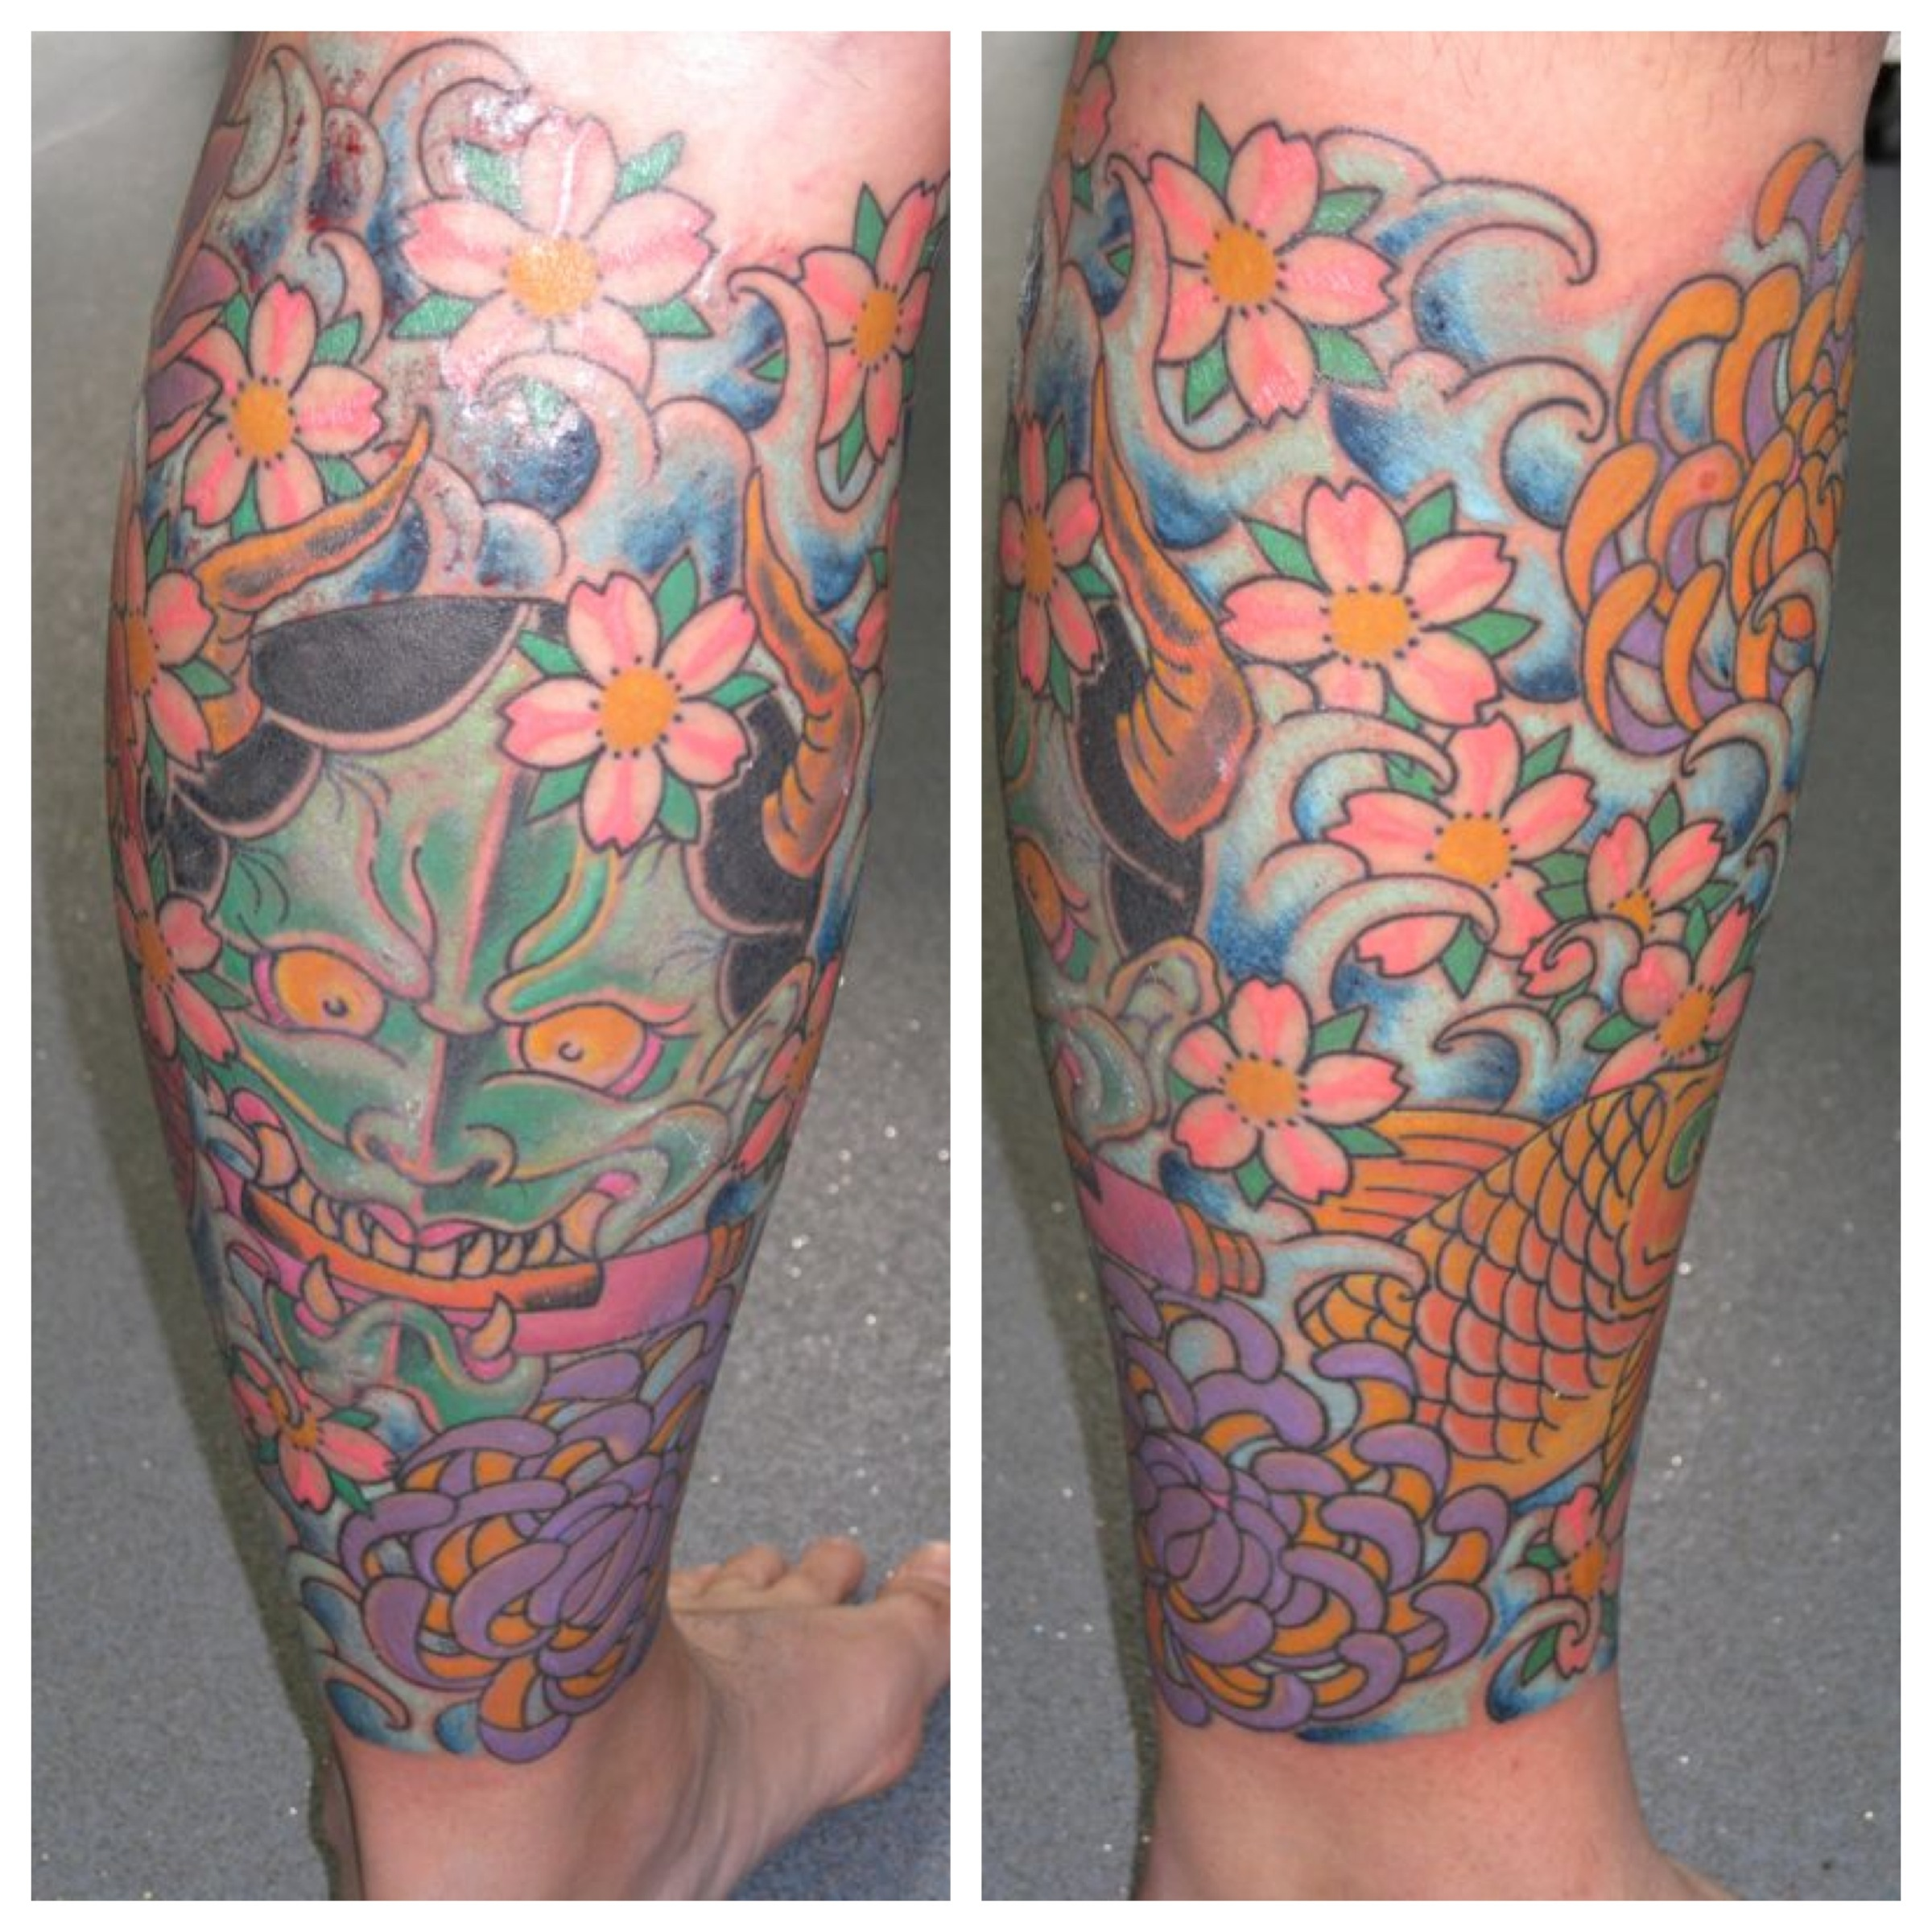 Koi Irish St Tattoo